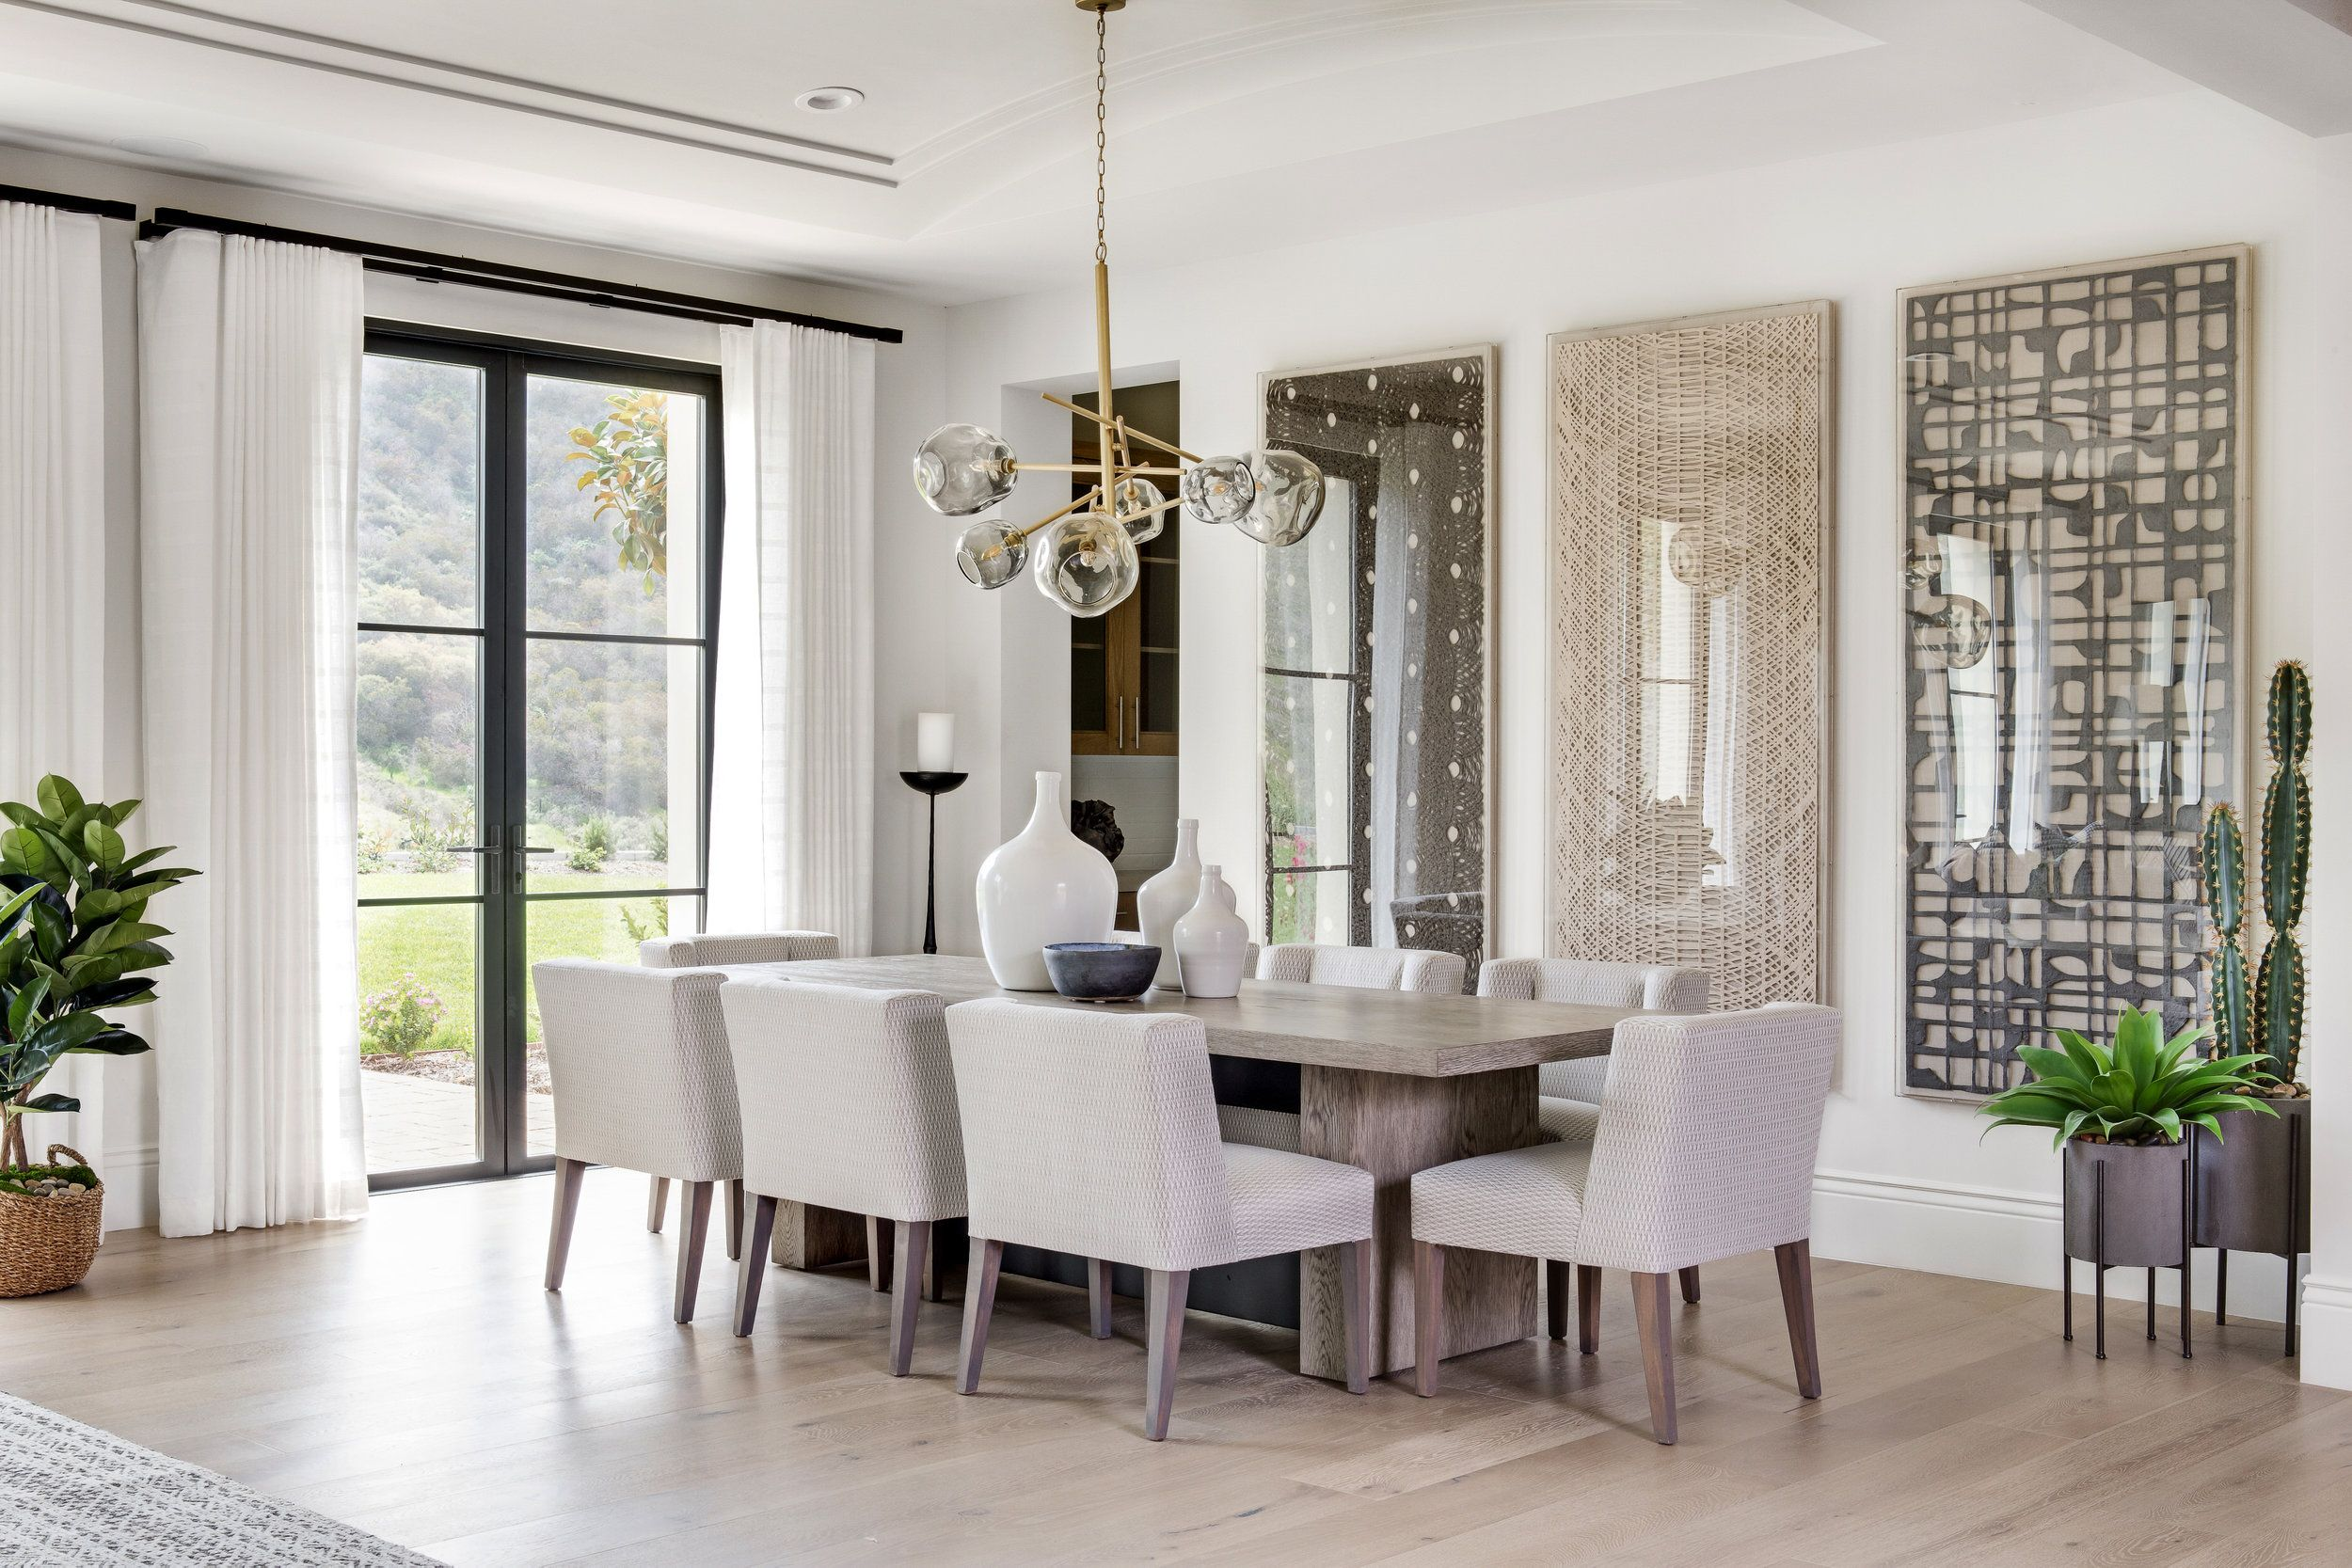 Pin On Gorgeous Interior Design Breathe And Love Your Space